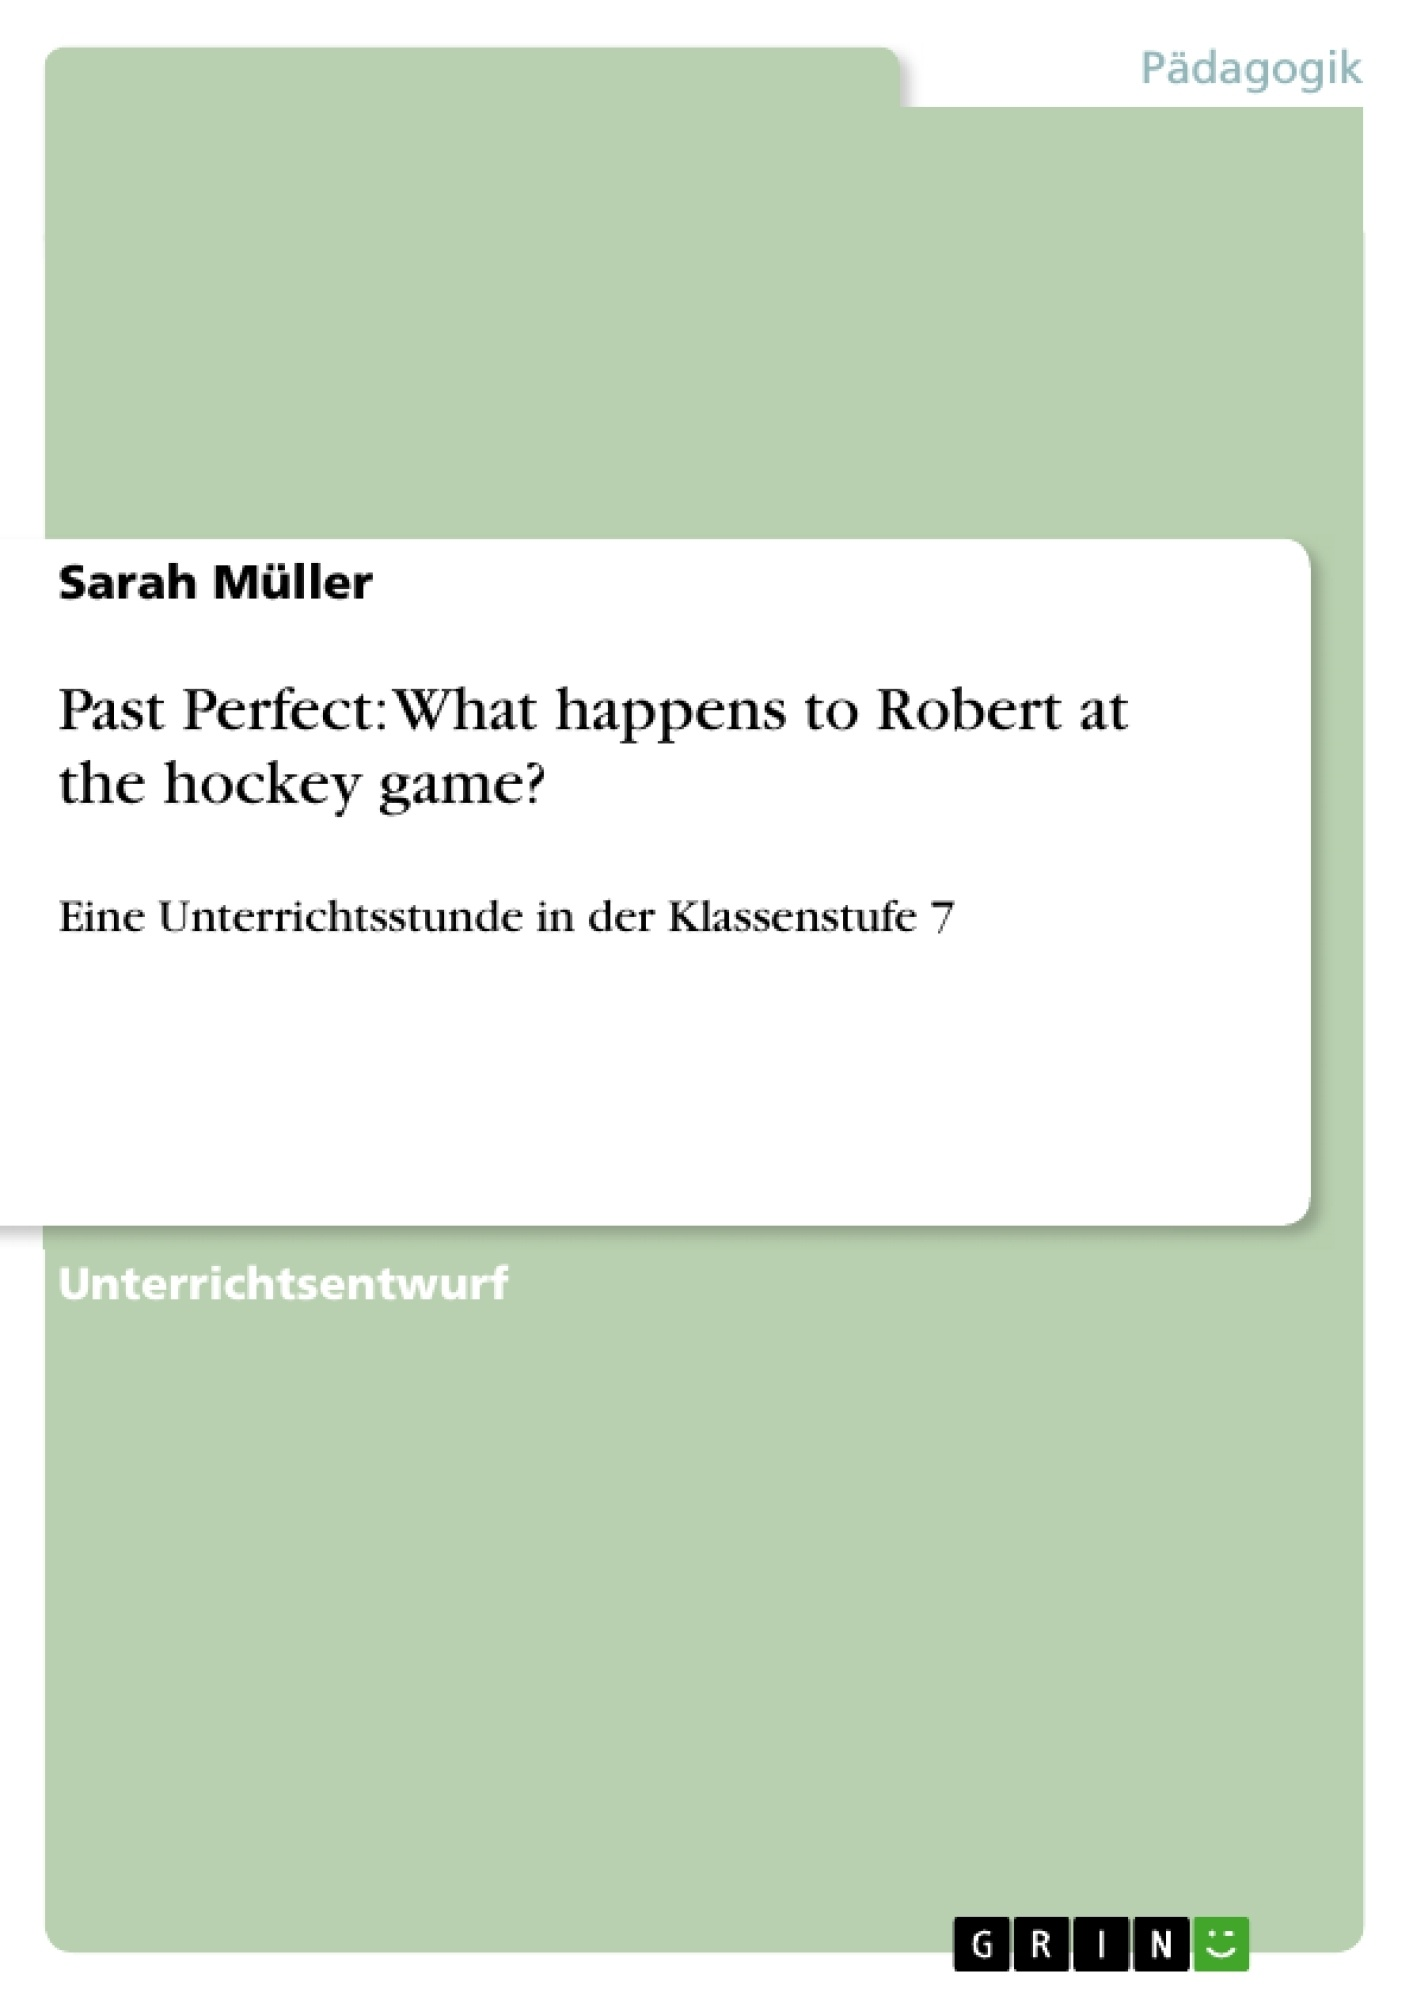 Titel: Past Perfect: What happens to Robert at the hockey game?